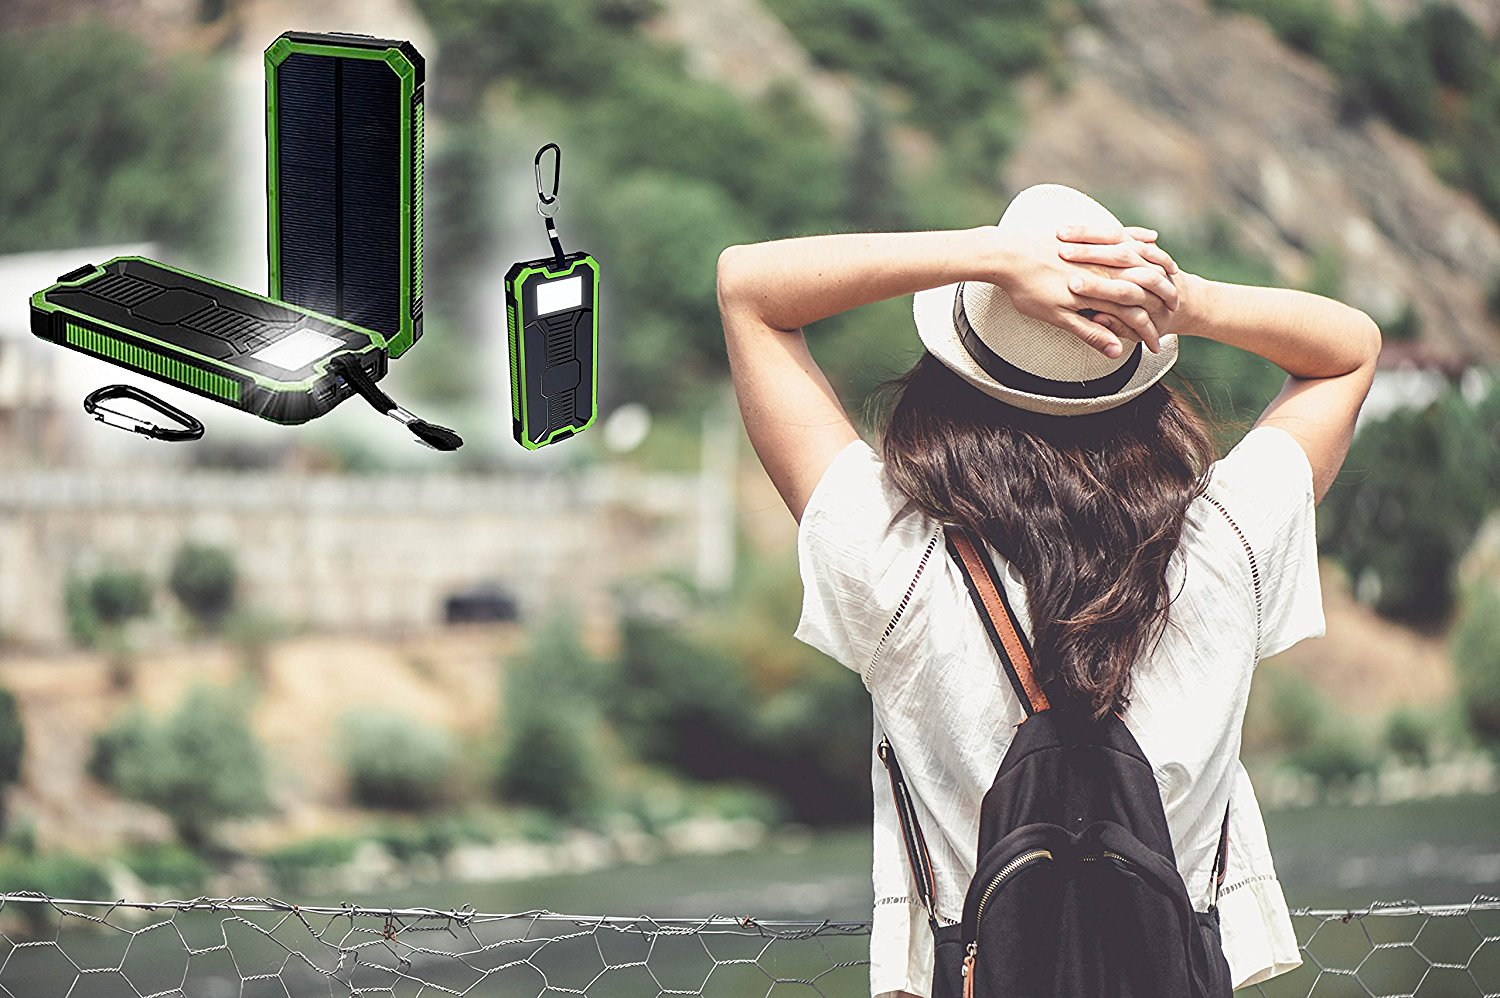 Power bank 20000mAh Portable with a solar charger for backup. Dual USB Ports, Phone Charger for iPhone iPad Cell Phones Tablets, Emergency Backup Battery with Flashlight.Get yours now!!